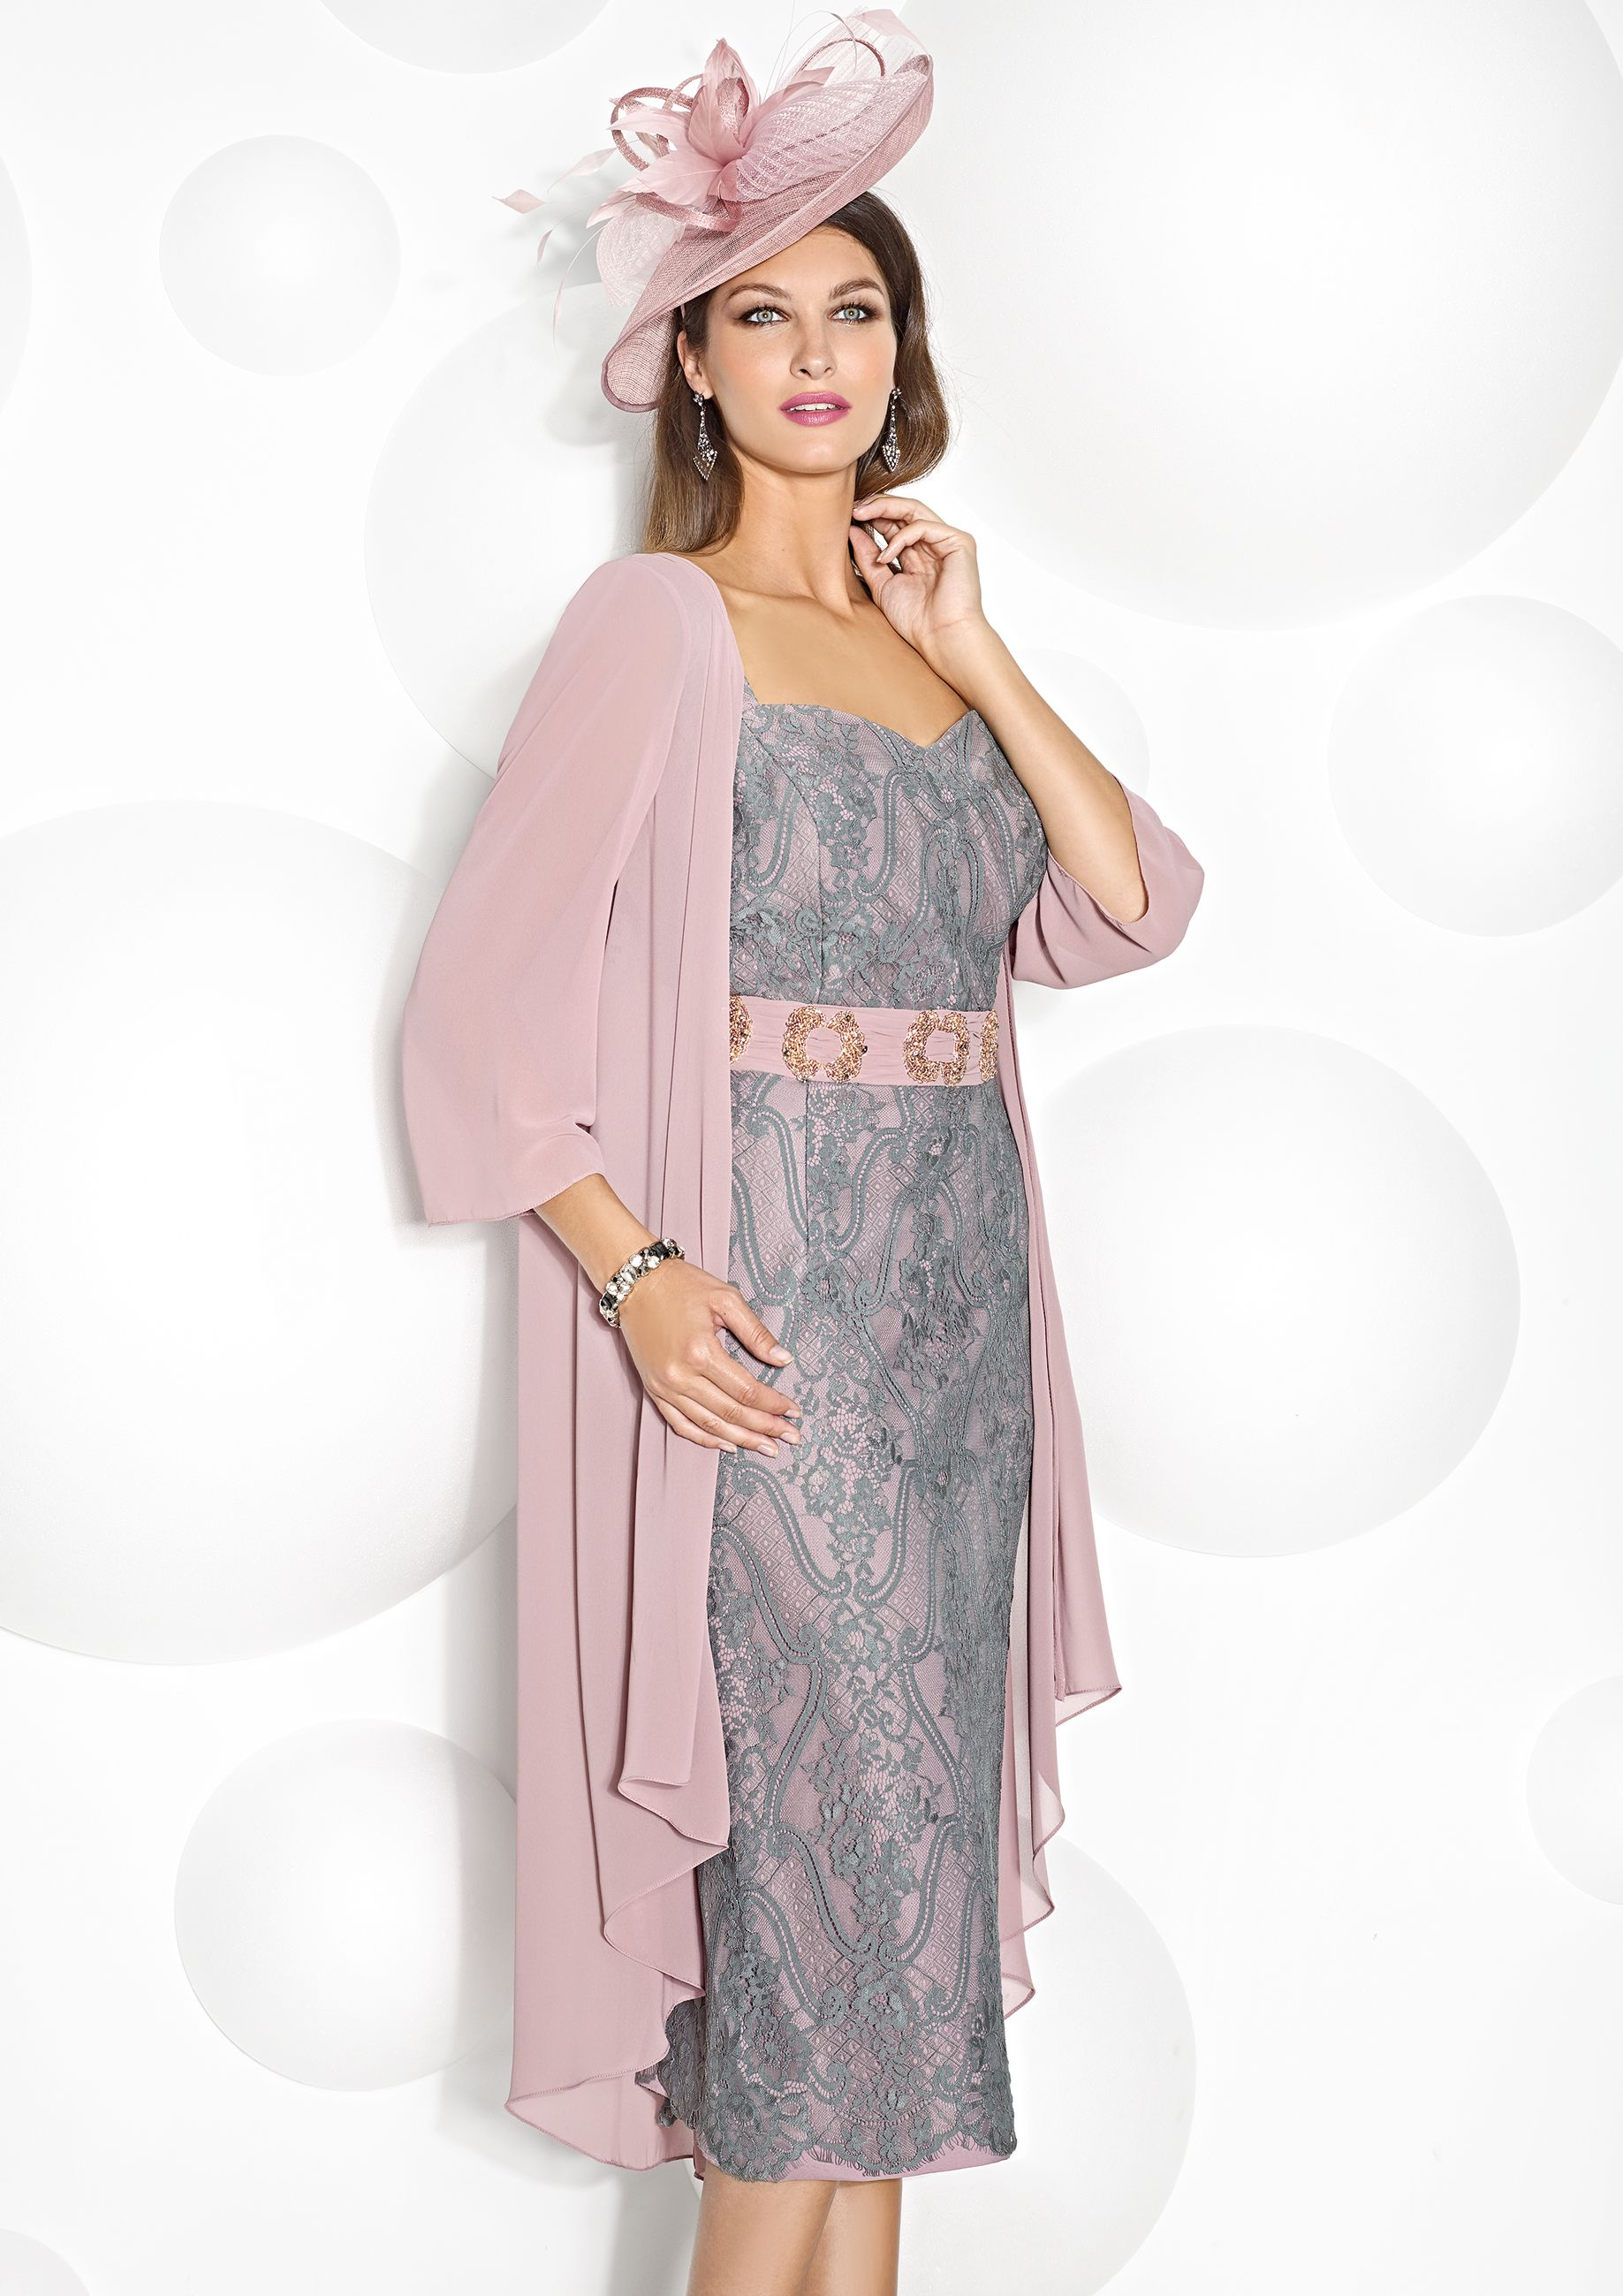 d3f359b794a Pink and silver lace dress with pink floaty coat by Cabotine perfect for  the summer wedding. www.froxoffalkirk.com